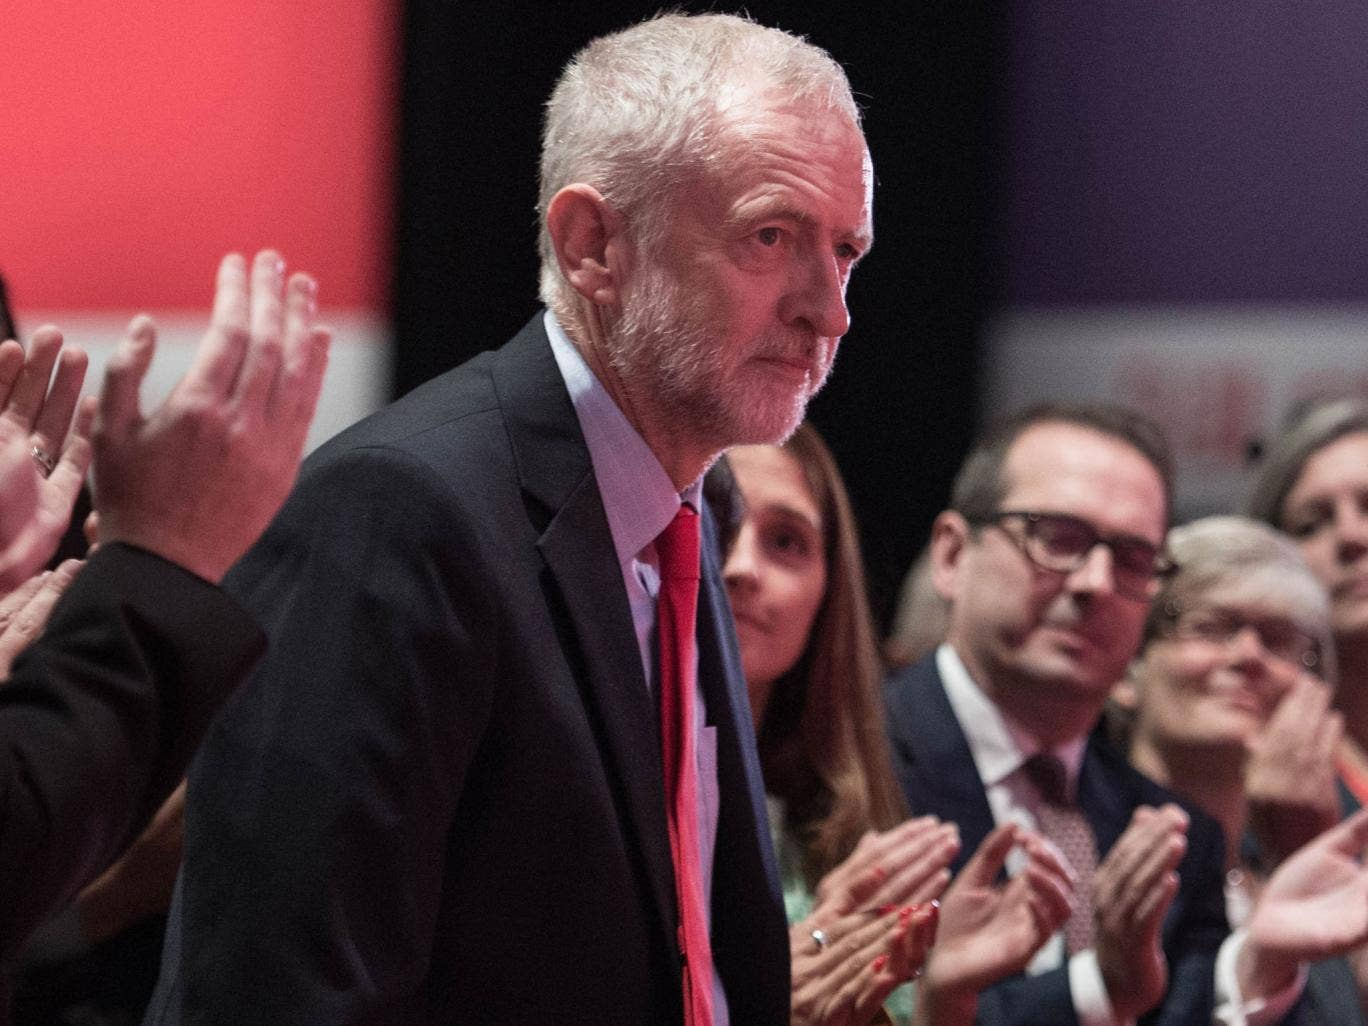 Jeremy Corbyn wins yet another Labour election victory